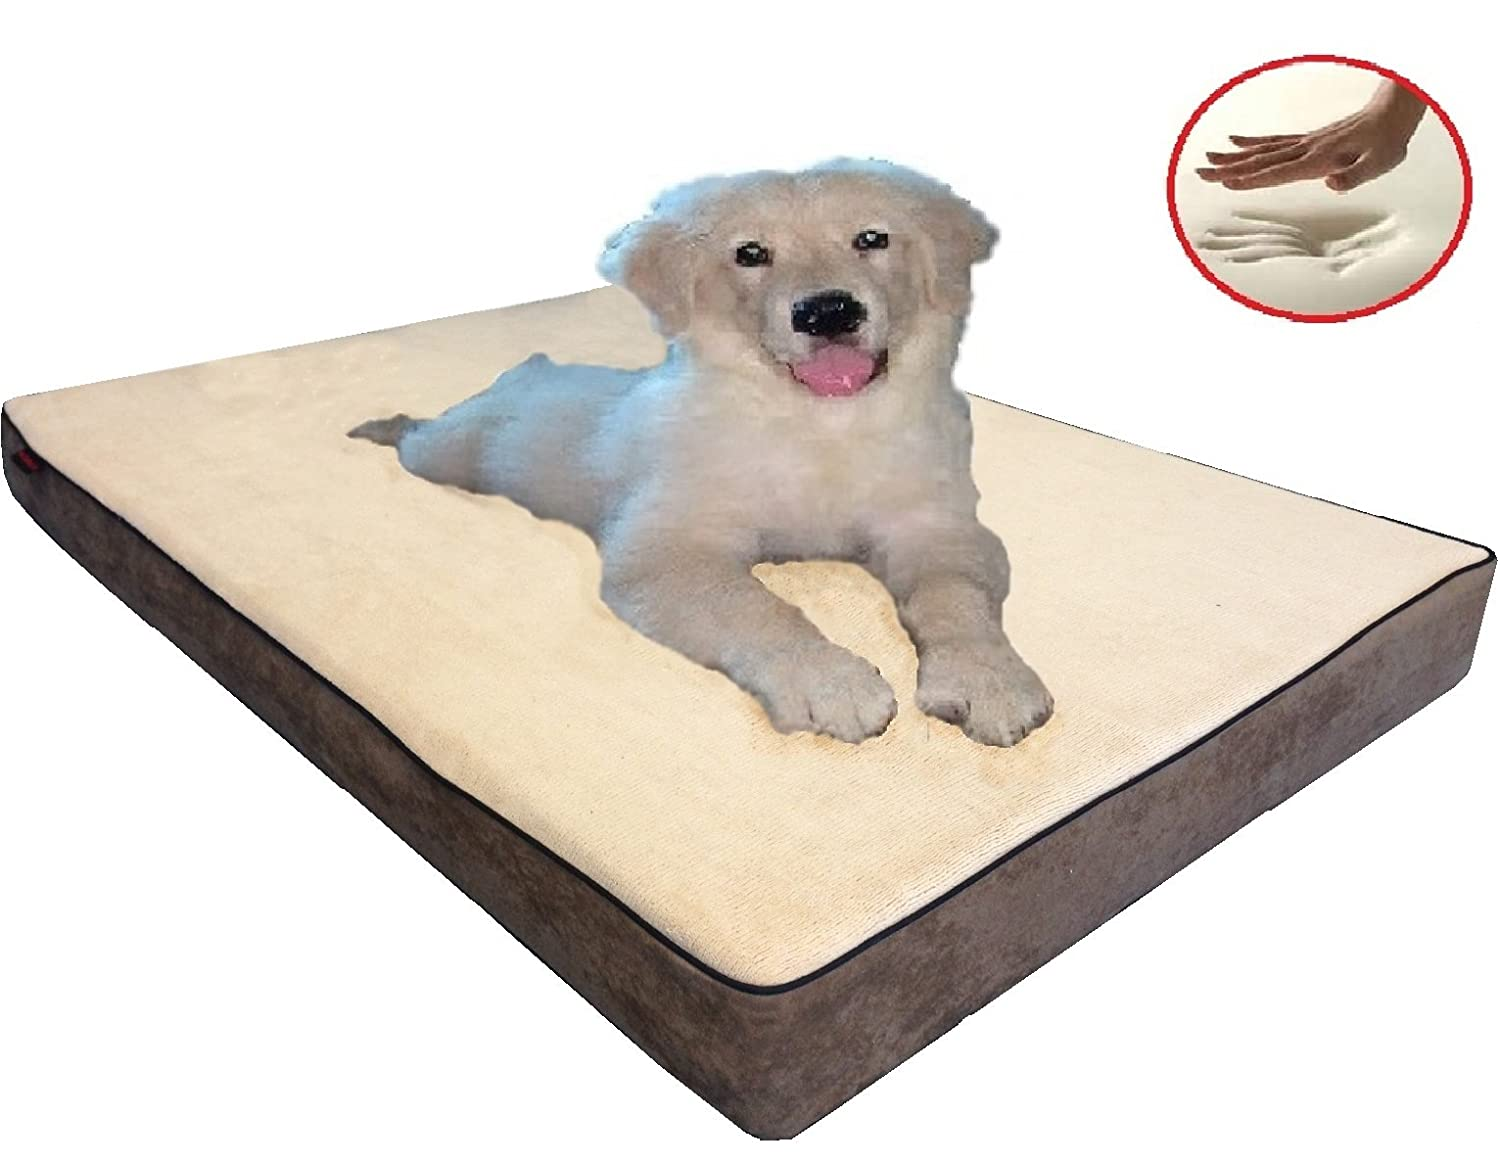 ehomegoods 41 X27 X4 Beige color Gusset Style Orthopedic Waterproof Memory Foam Pet Pad Bed for Medium Large dog crate size 42 X28 with 2 external covers